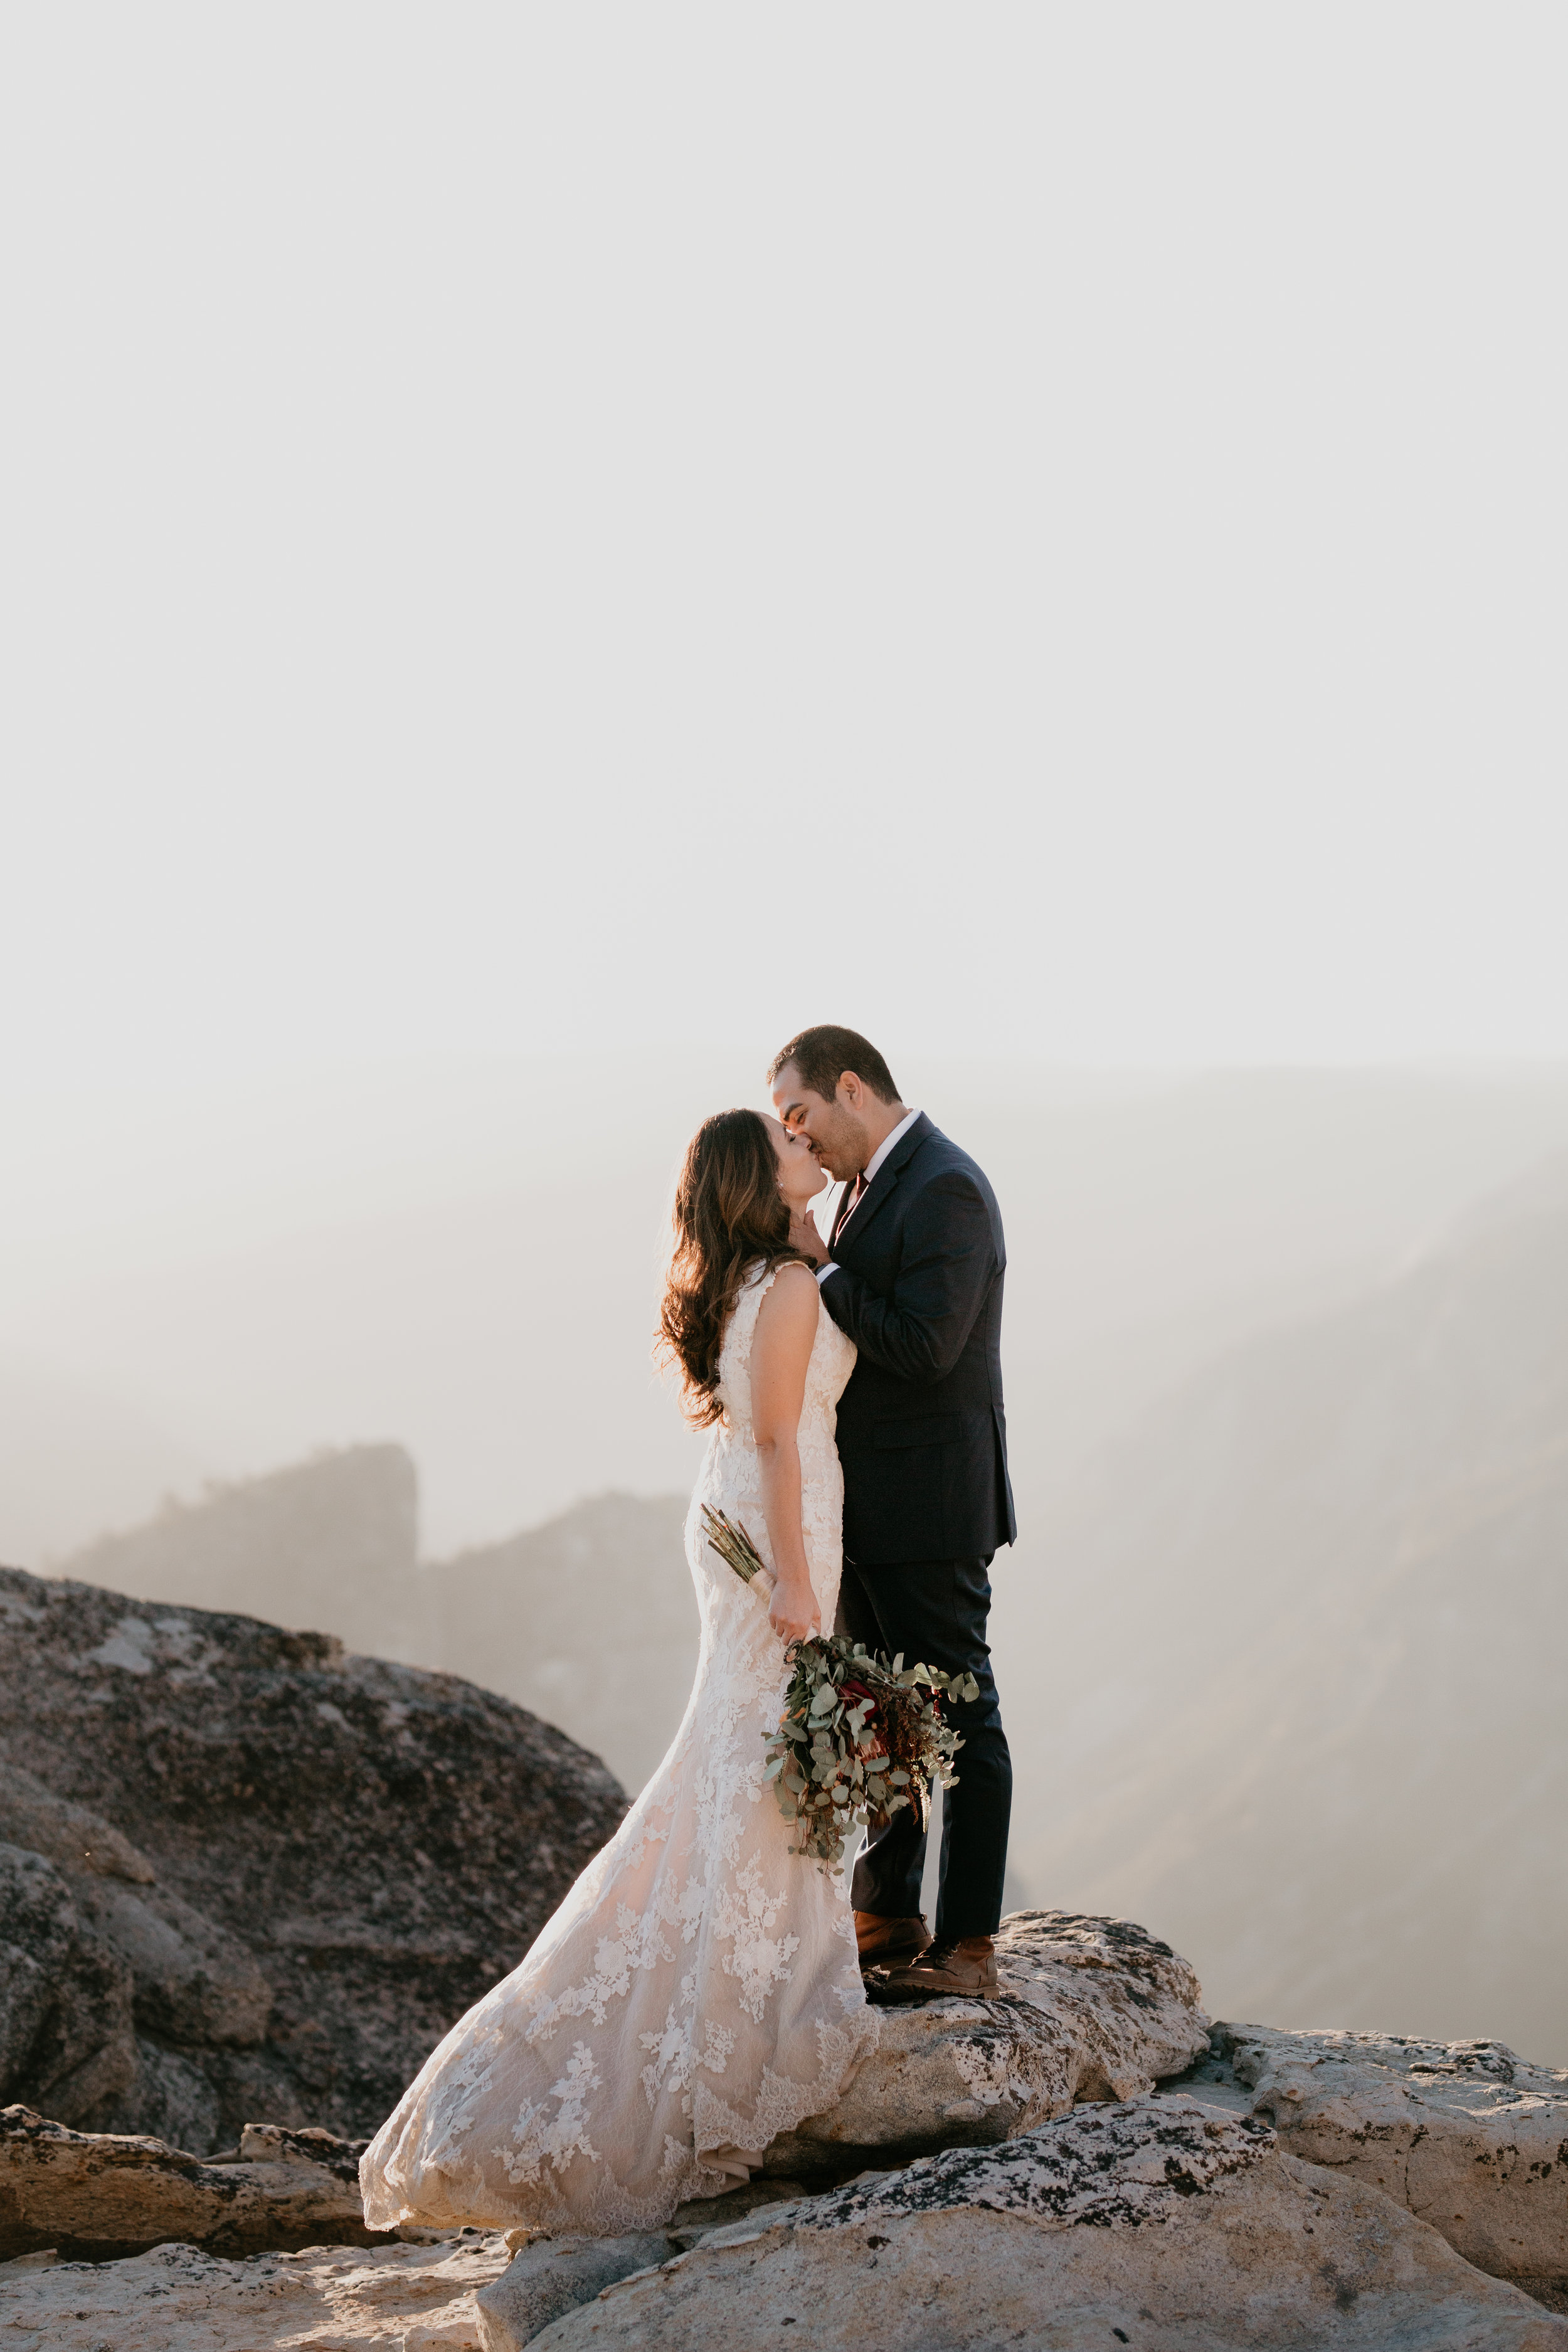 nicole-daacke-photography-intimate-elopement-wedding-yosemite-national-park-california-taft-point-sunset-photos-yosemite-valley-tunnel-view-first-look-sunrise-golden-granite-hiking-adventure-wedding-adventurous-elopement-photographer-95.jpg